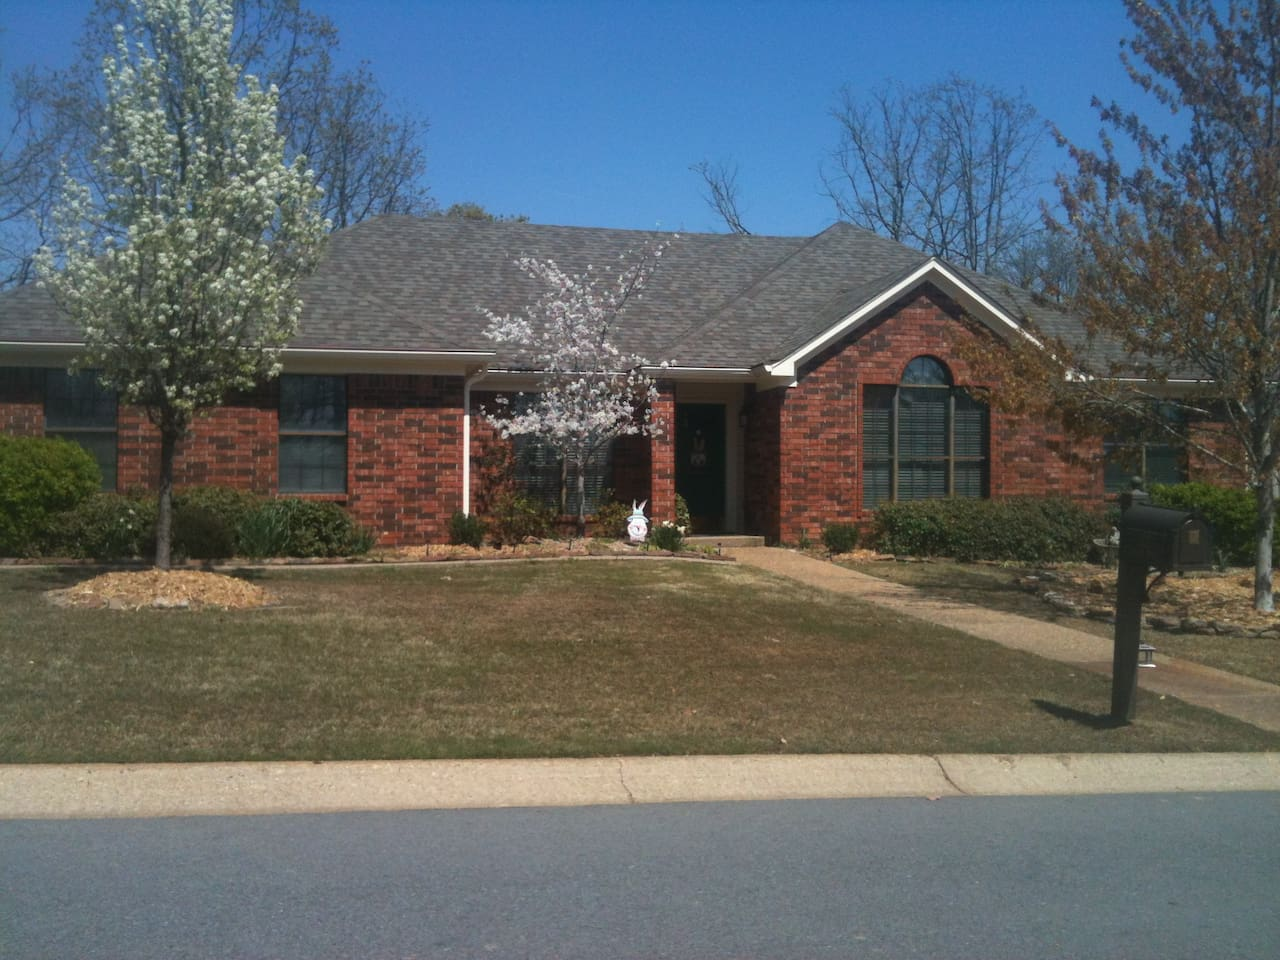 Our home in the Spring when the Cherry and Pear trees are blooming